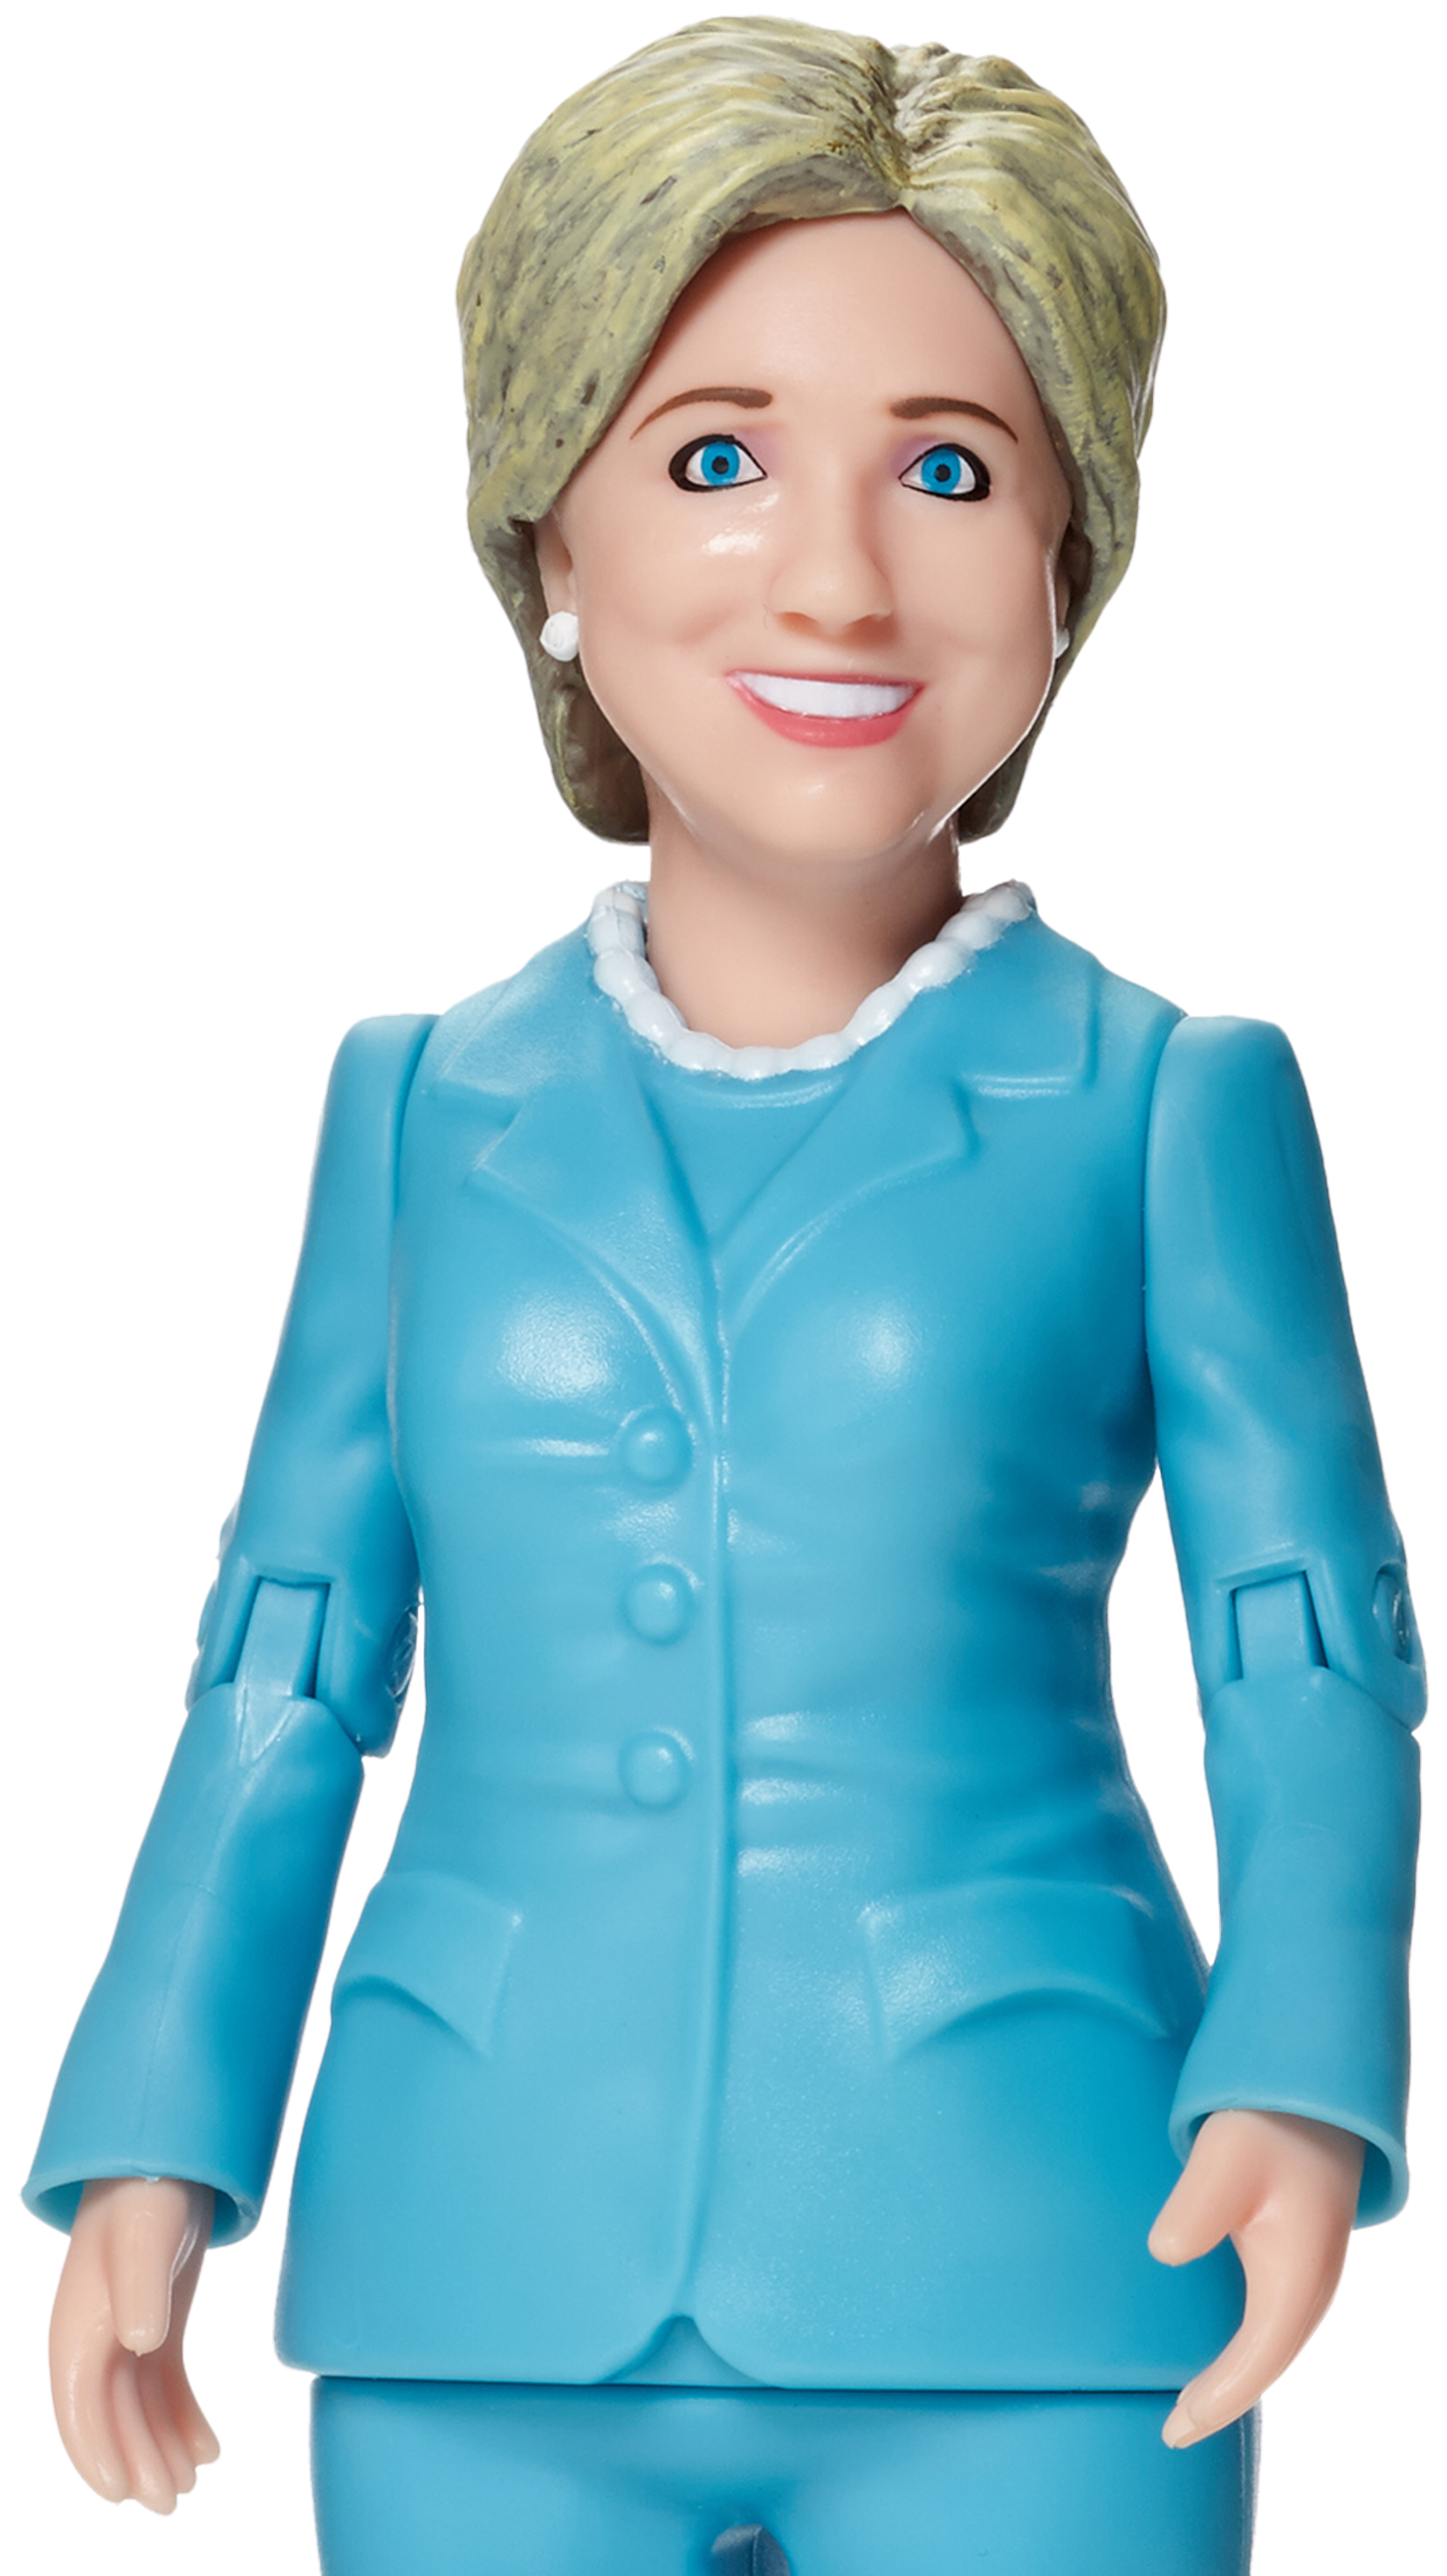 Hillary transparent full body. Clinton action figure she